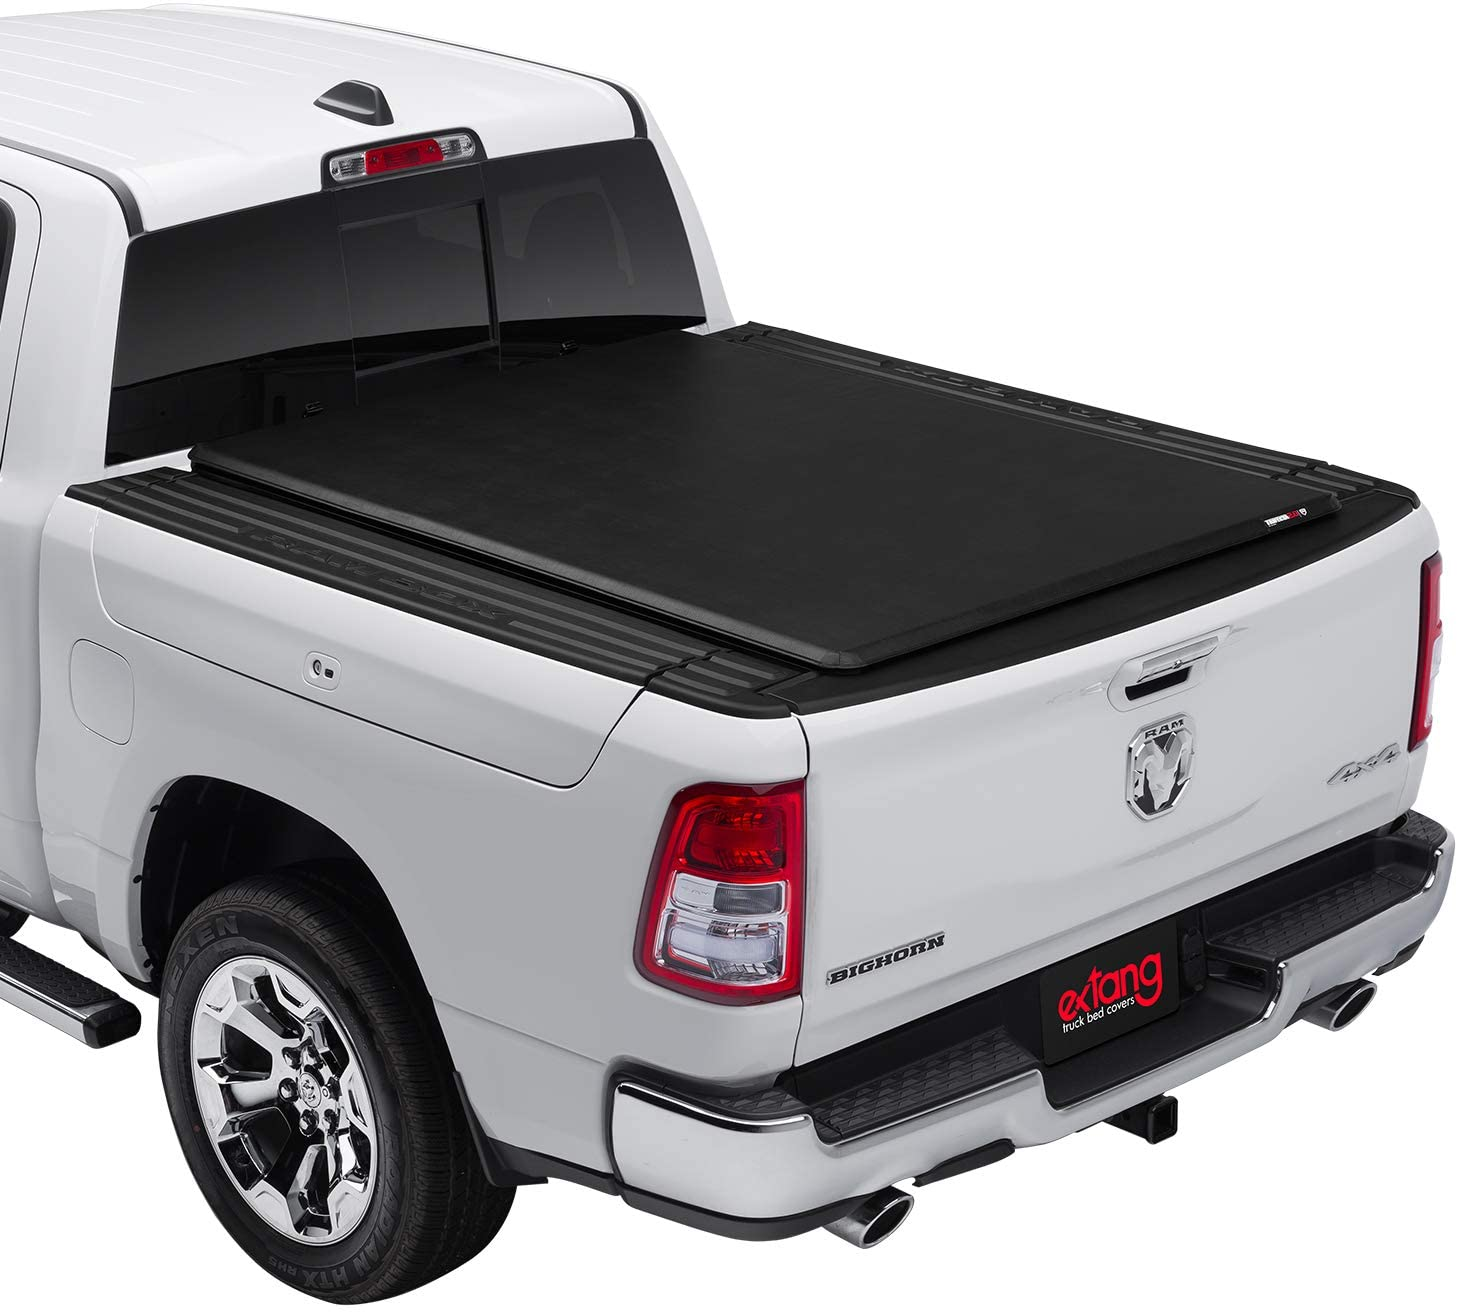 """Extang Trifecta 2.0 Soft Folding Truck Bed Tonneau Cover   92420   Fits 2009-18, 19/20 Classic Dodge RAM RamBox 5' 7"""" Bed (67.4"""")"""